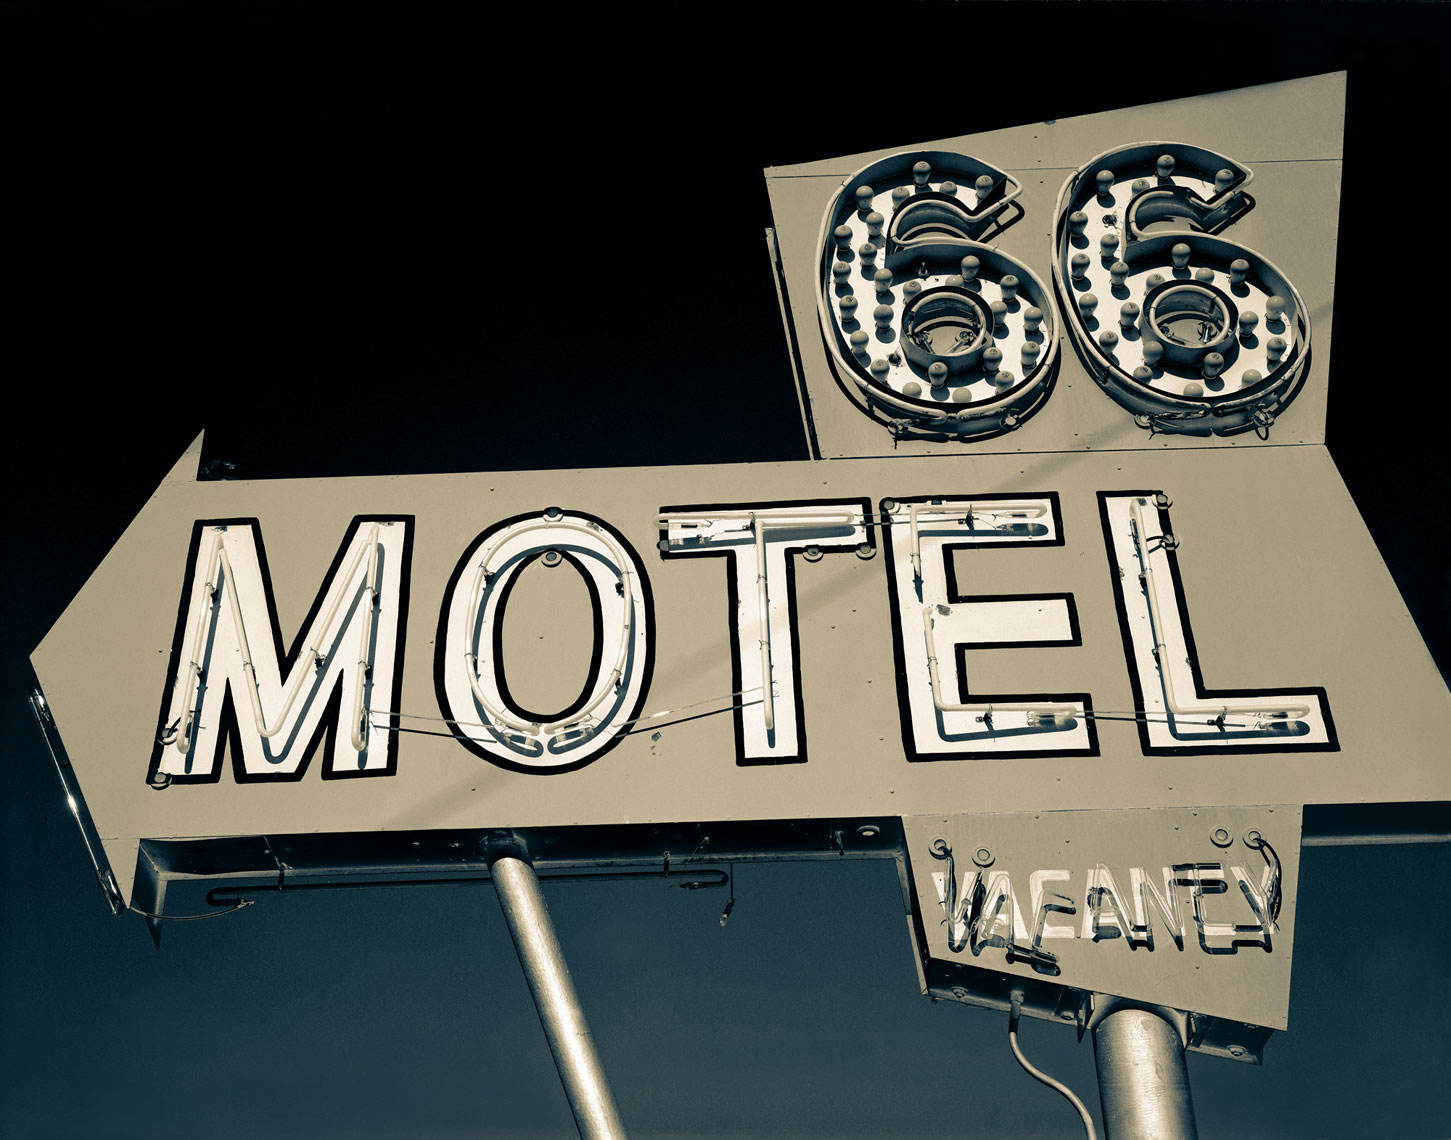 jeff-green-route-66-vintage-sign-photo